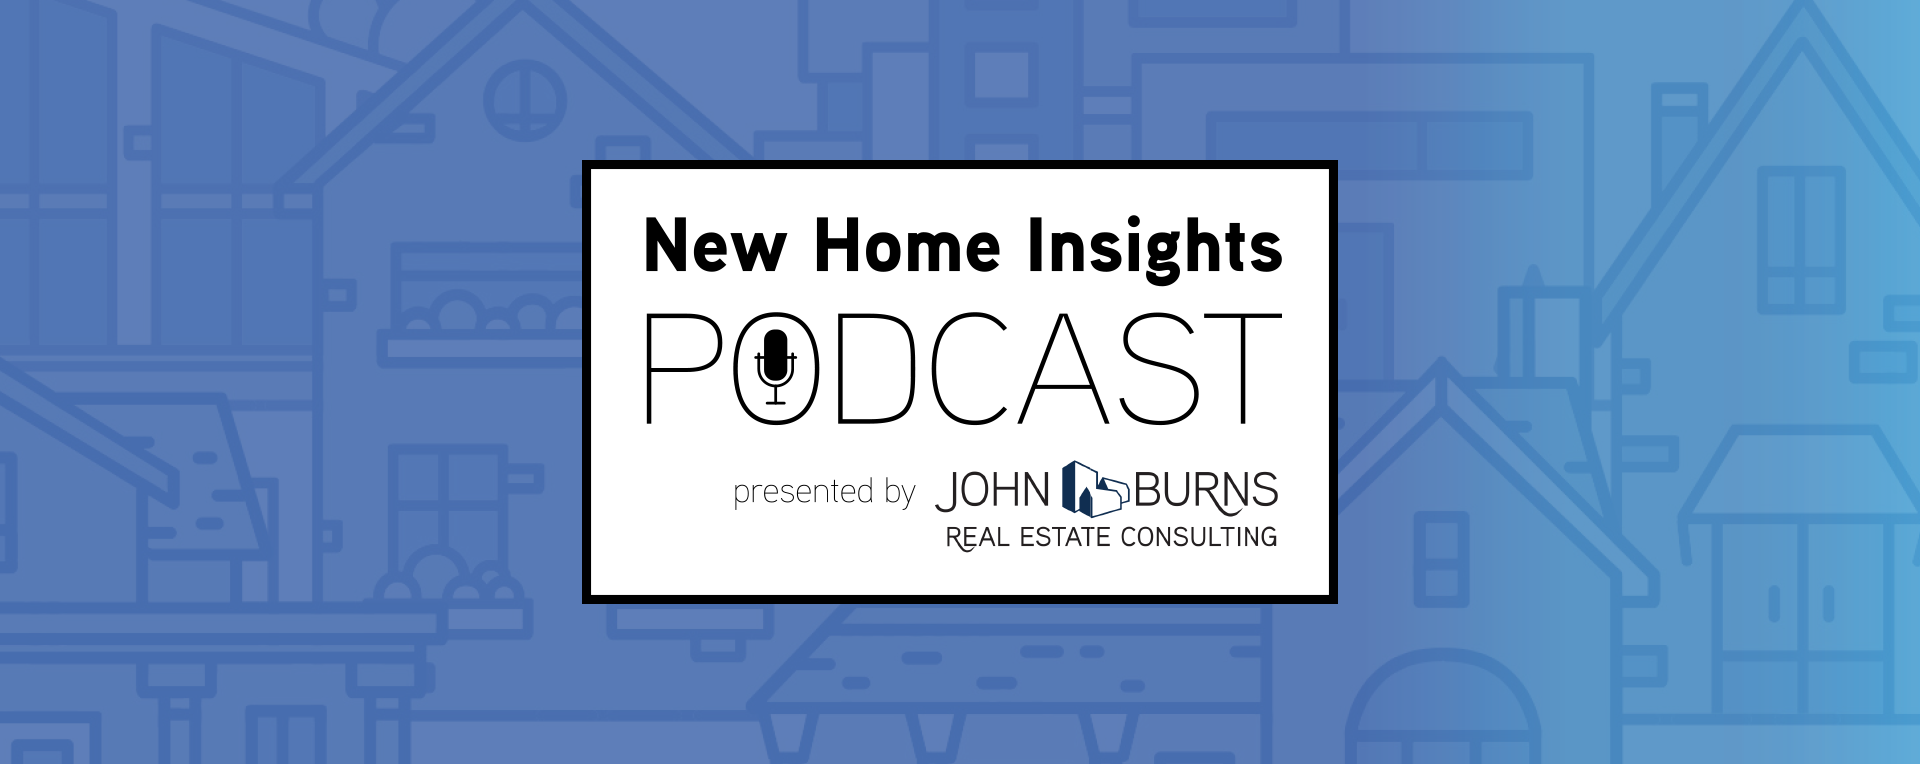 New Home Insights Podcast Design with Confidence Houzz